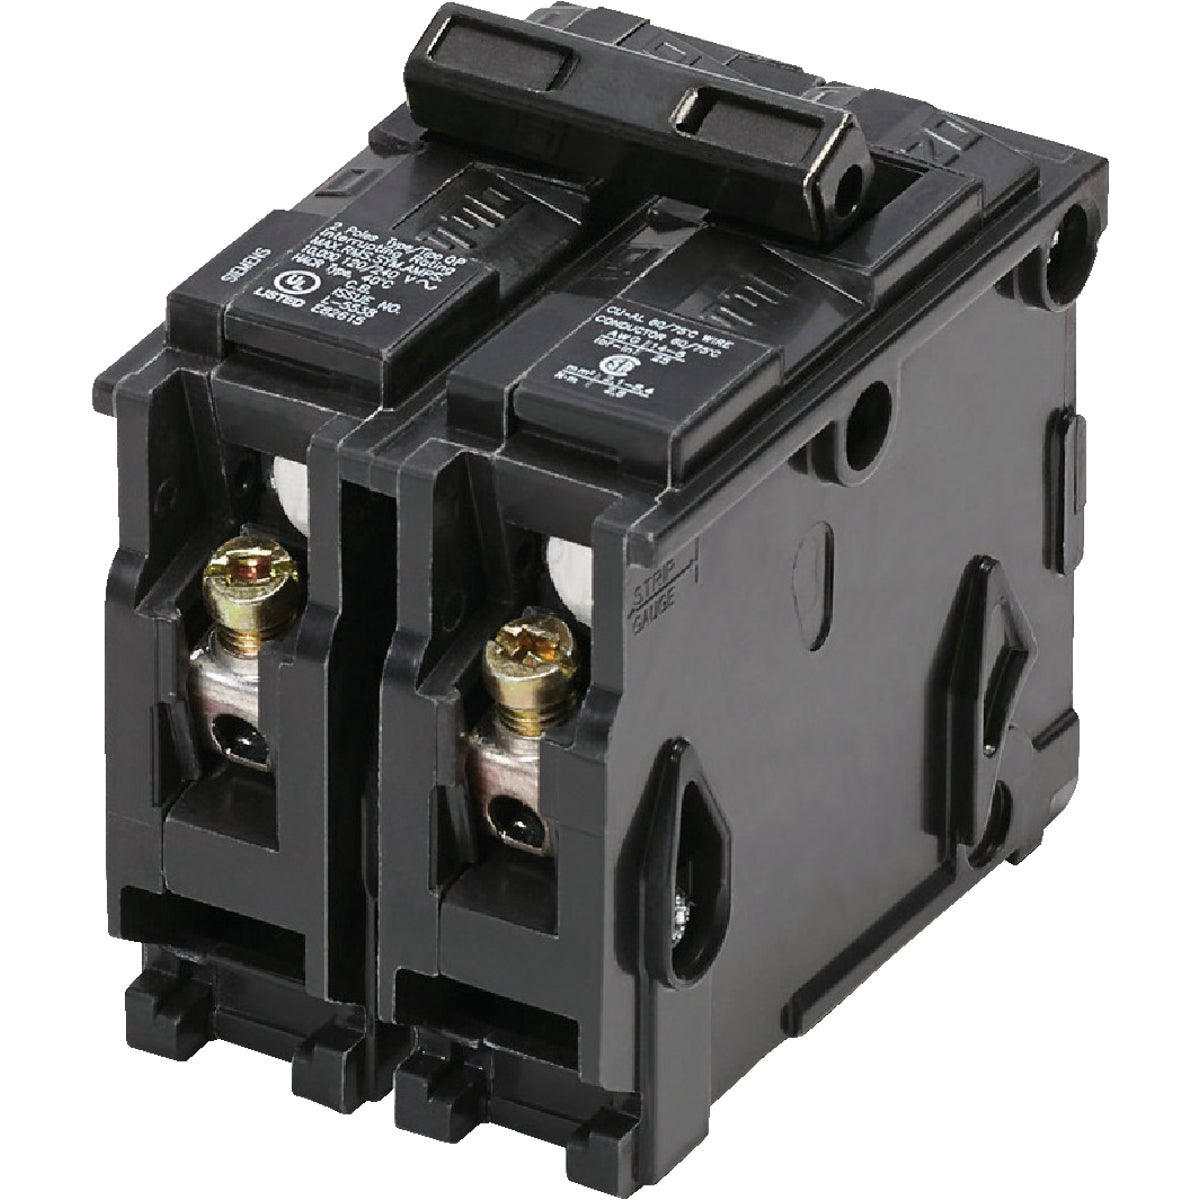 60A 2P CIRCUIT BREAKER - ICBQ260 by Connecticut Electric